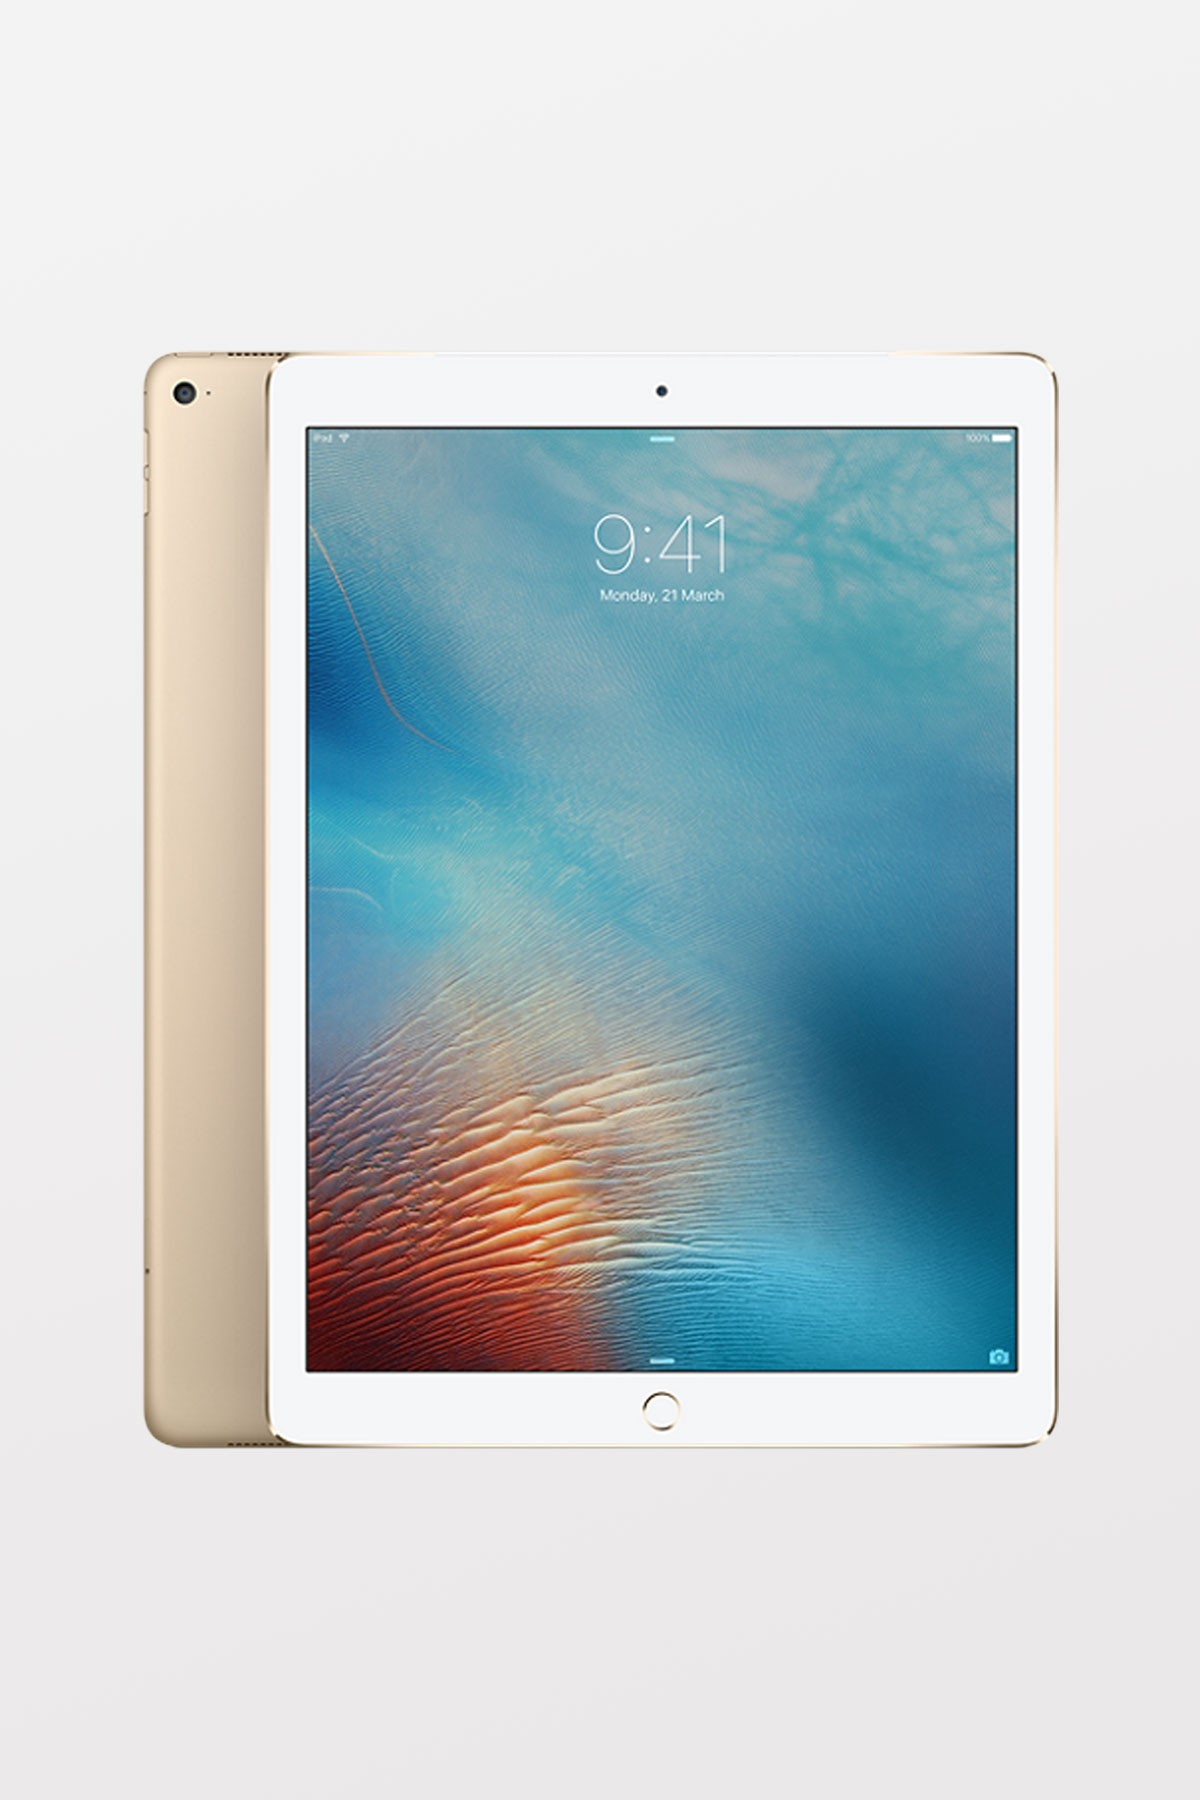 Apple iPad Pro 12.9-inch Wi-Fi + Cellular 64GB - Gold